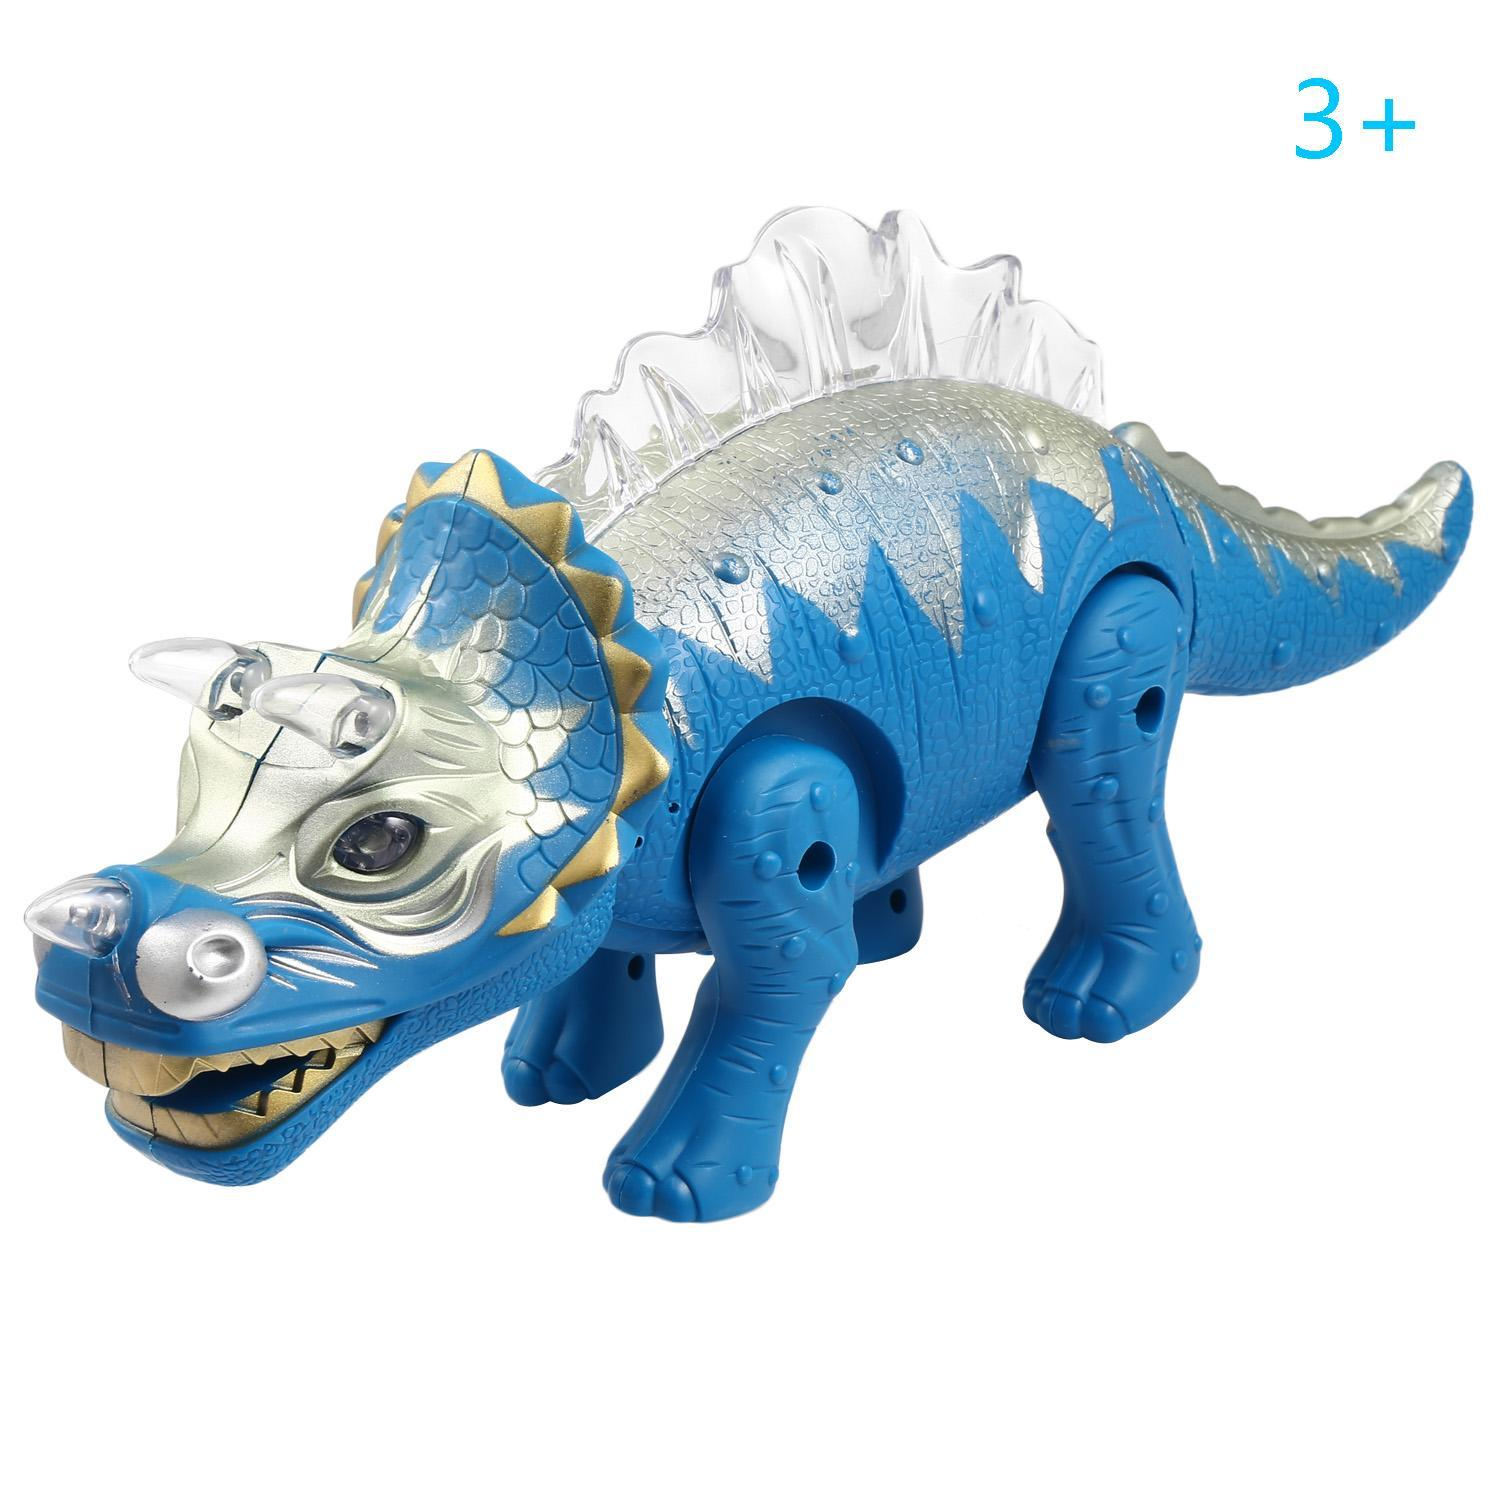 Battery Powered Triceratops Dinosaur Toy Realistic with Sounds Fun Lights Walks and Roars 0